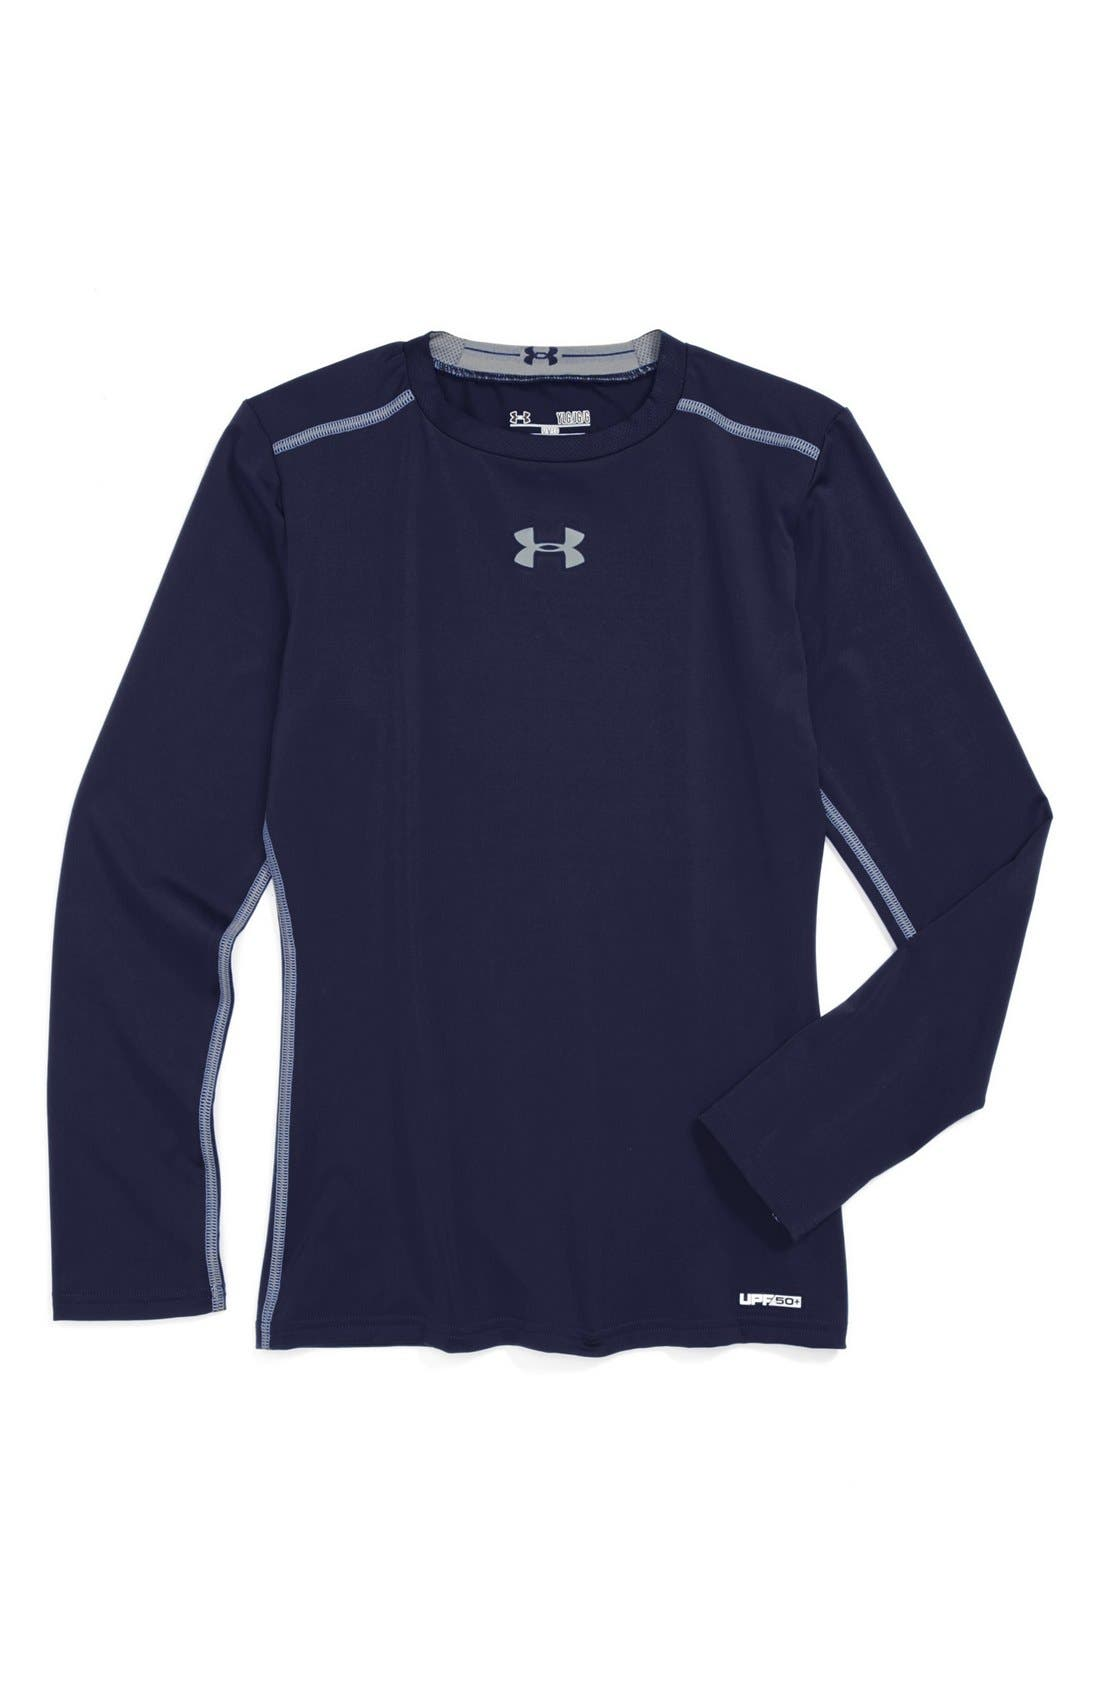 Alternate Image 1 Selected - Under Armour 'Sonic' T-Shirt (Big Boys)